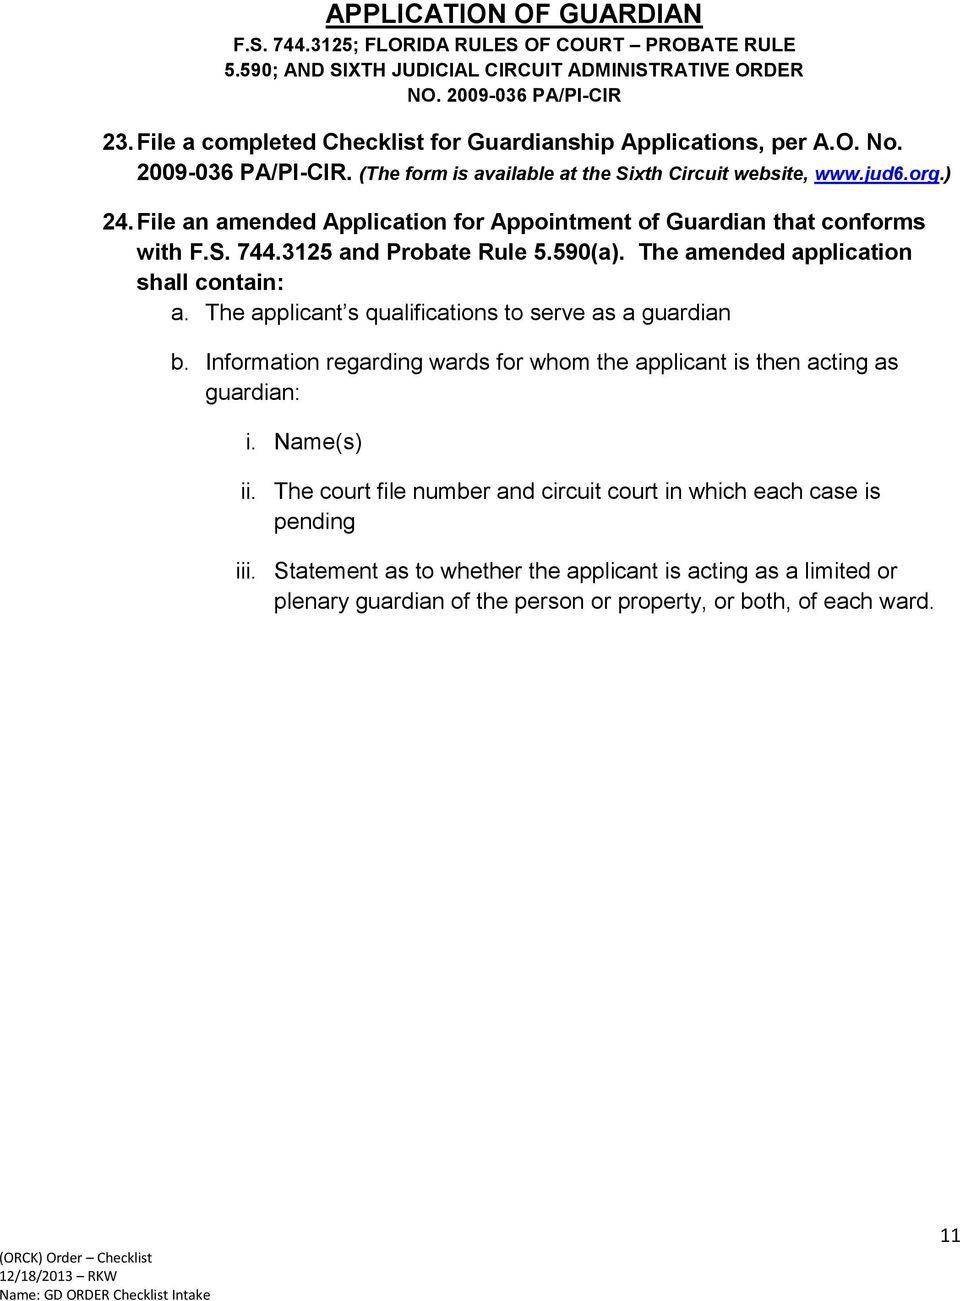 Florida Probate Rules Forms